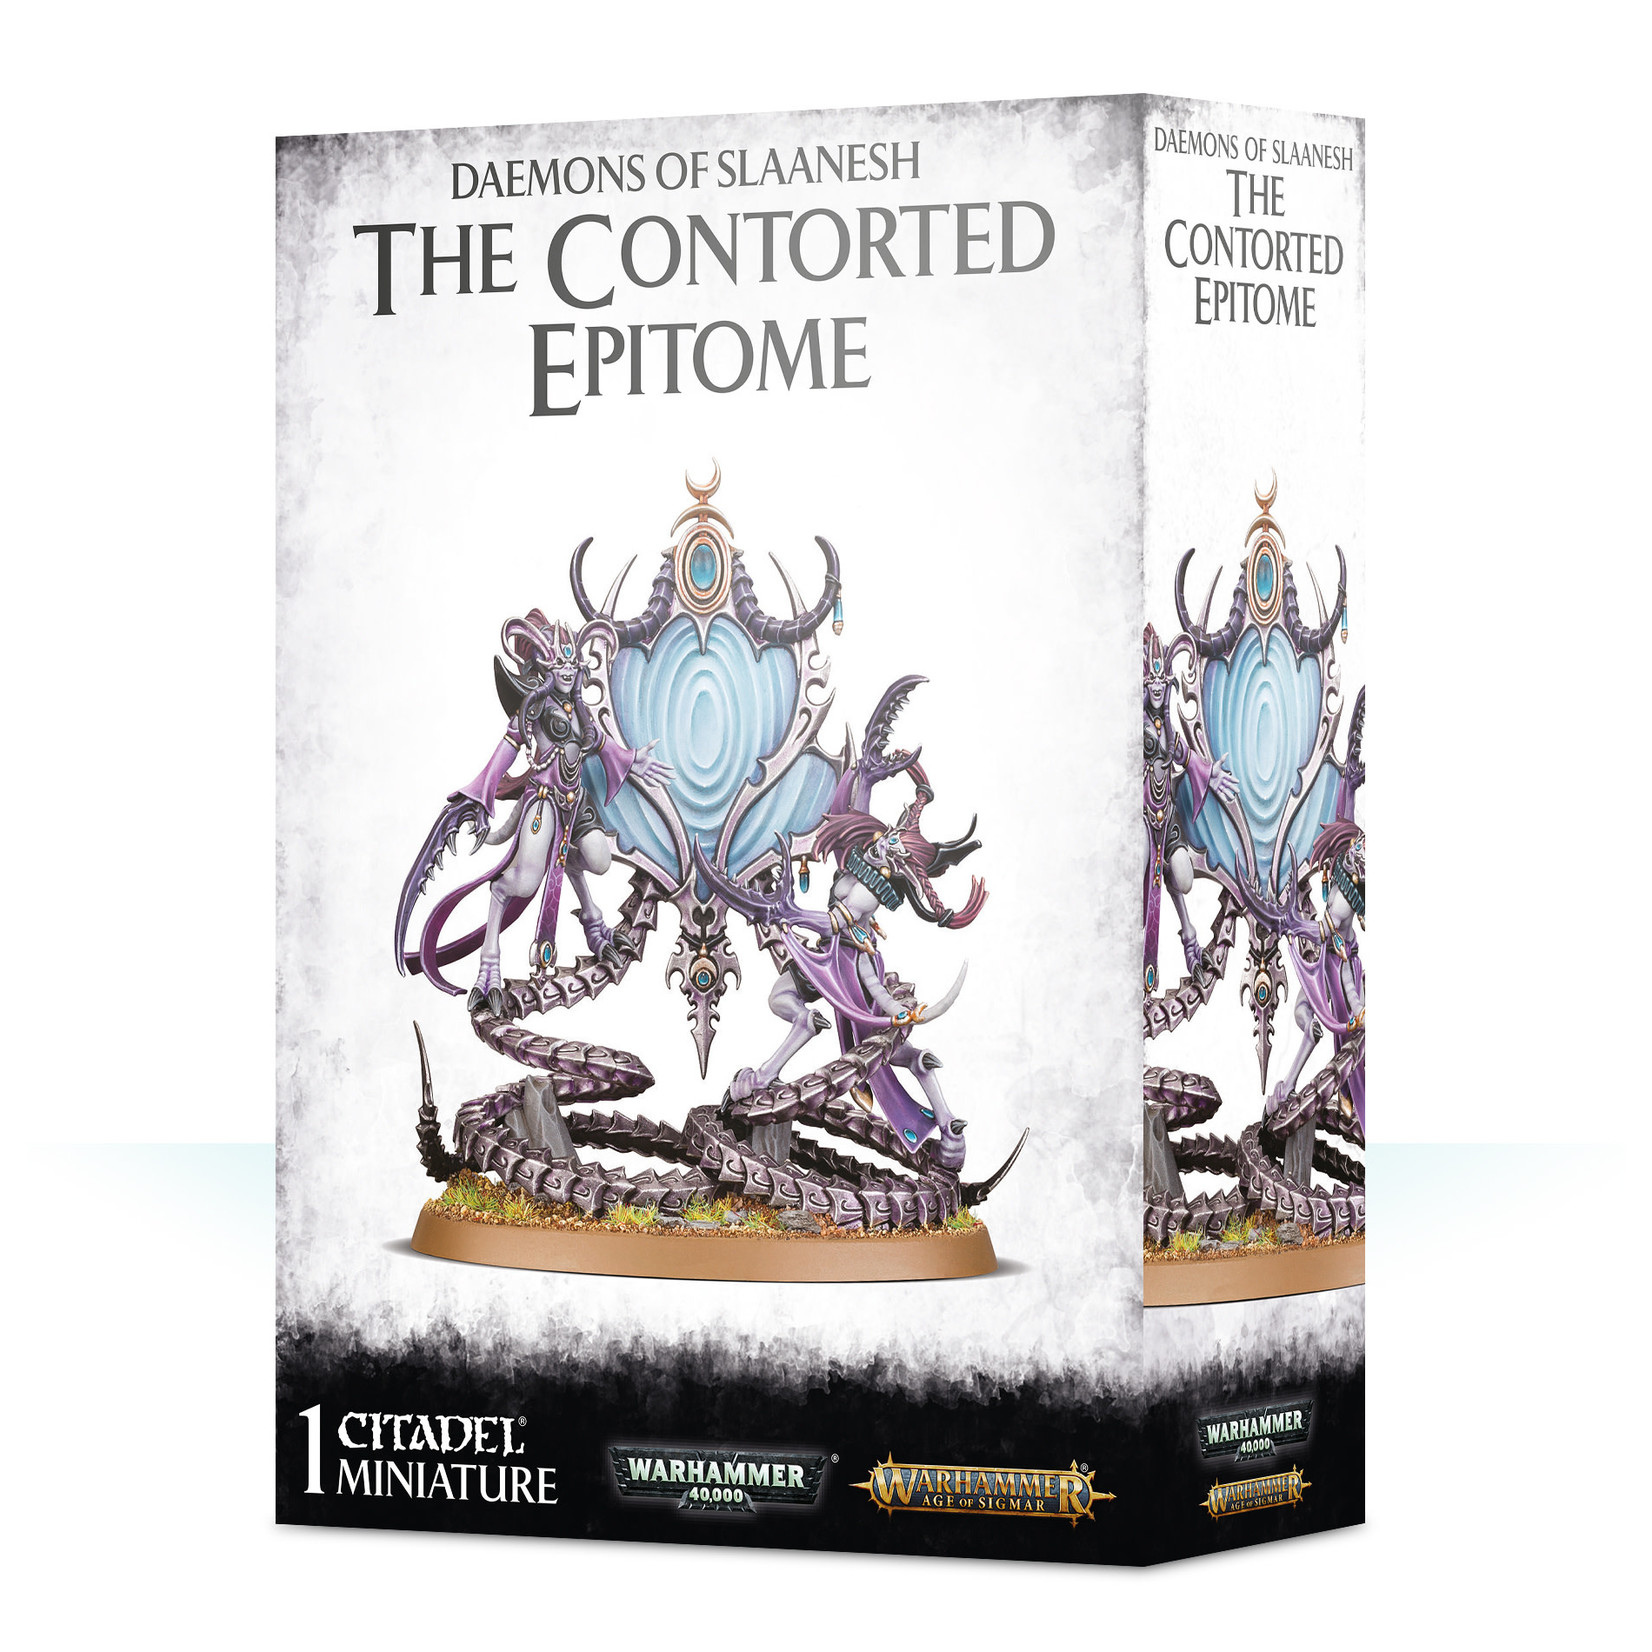 Games Workshop Daemons/slaanesh: The Contorted Epitome